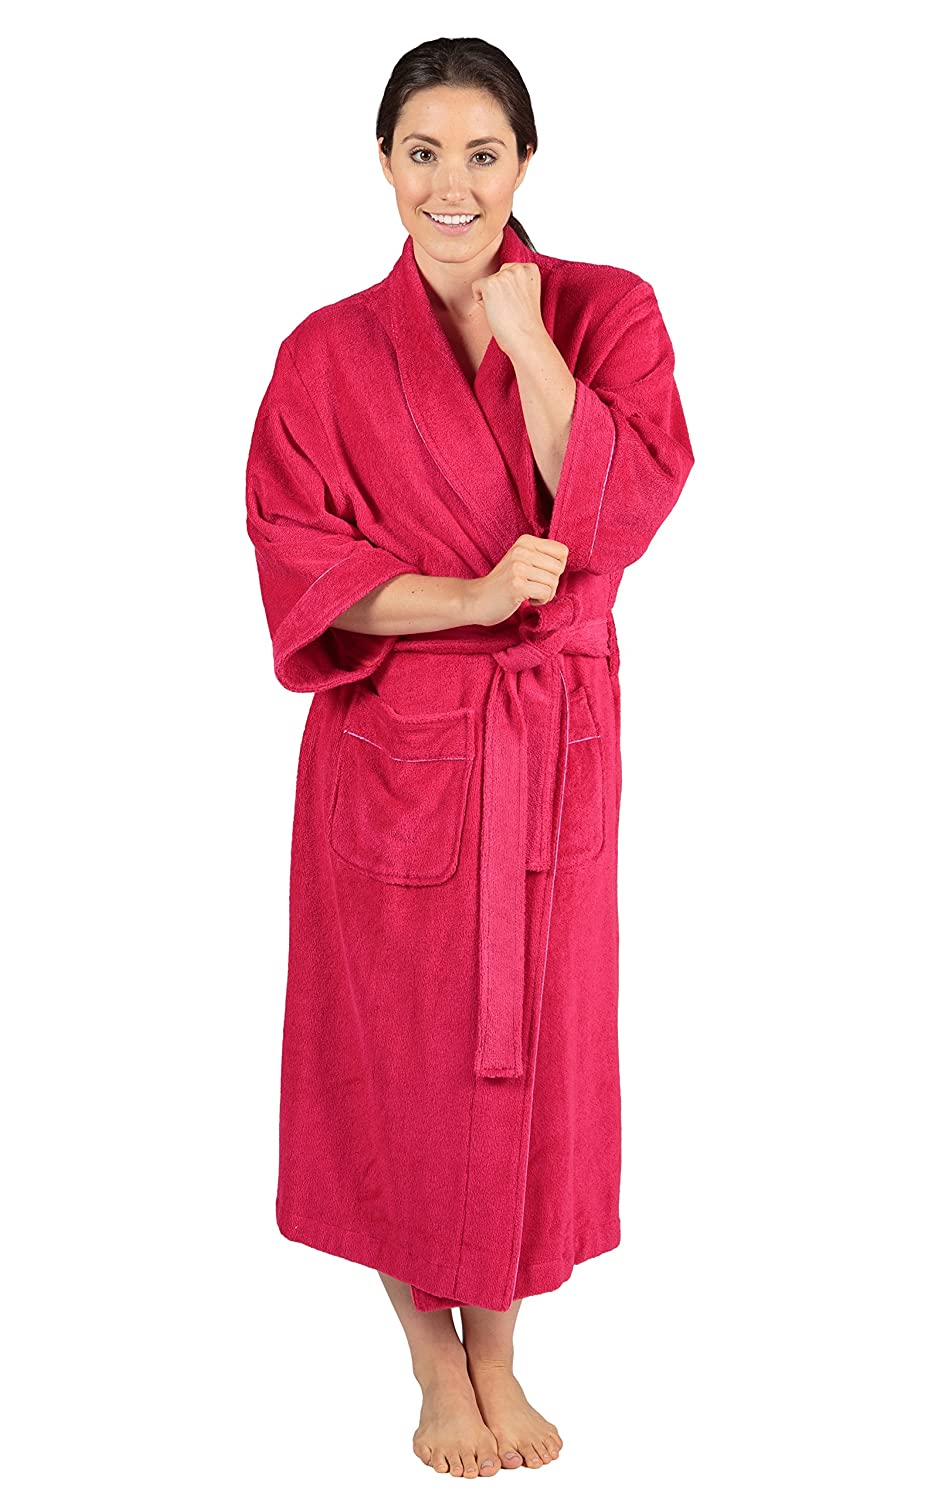 486dec0127 Women s Luxury Terry Cloth Bathrobe - Bamboo Viscose Robe by Texere  (Ecovaganza) at Amazon Women s Clothing store